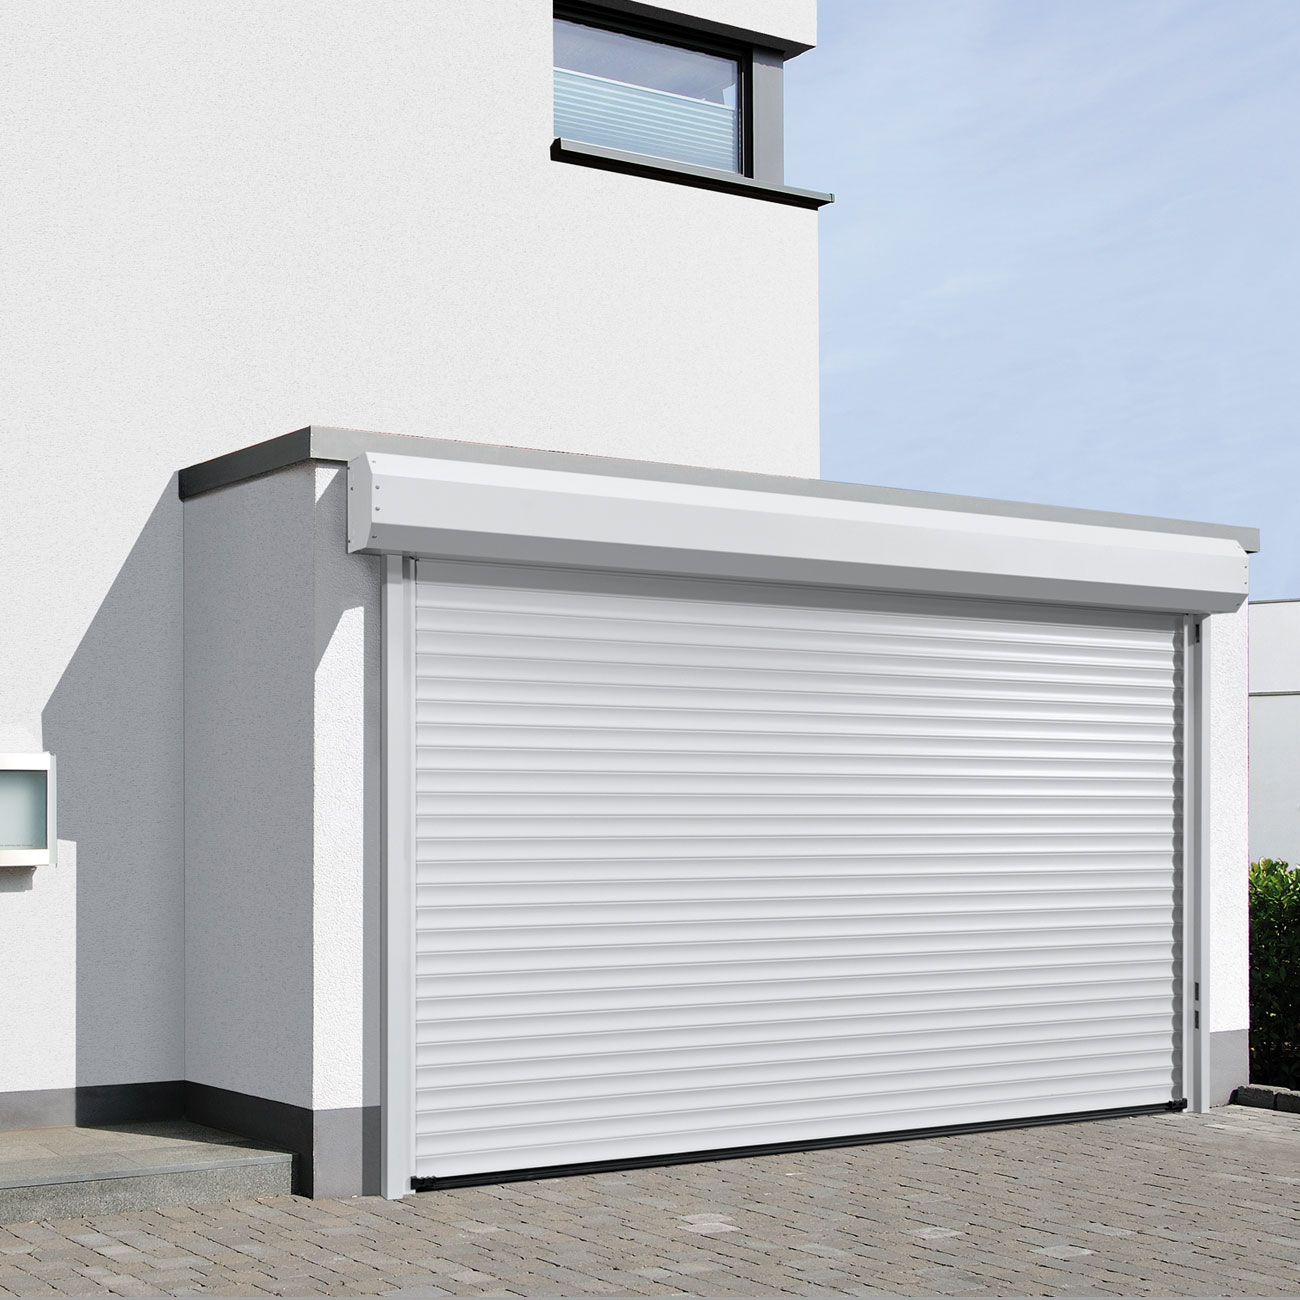 Hormann Rollmatic Emsworth Garage Doors